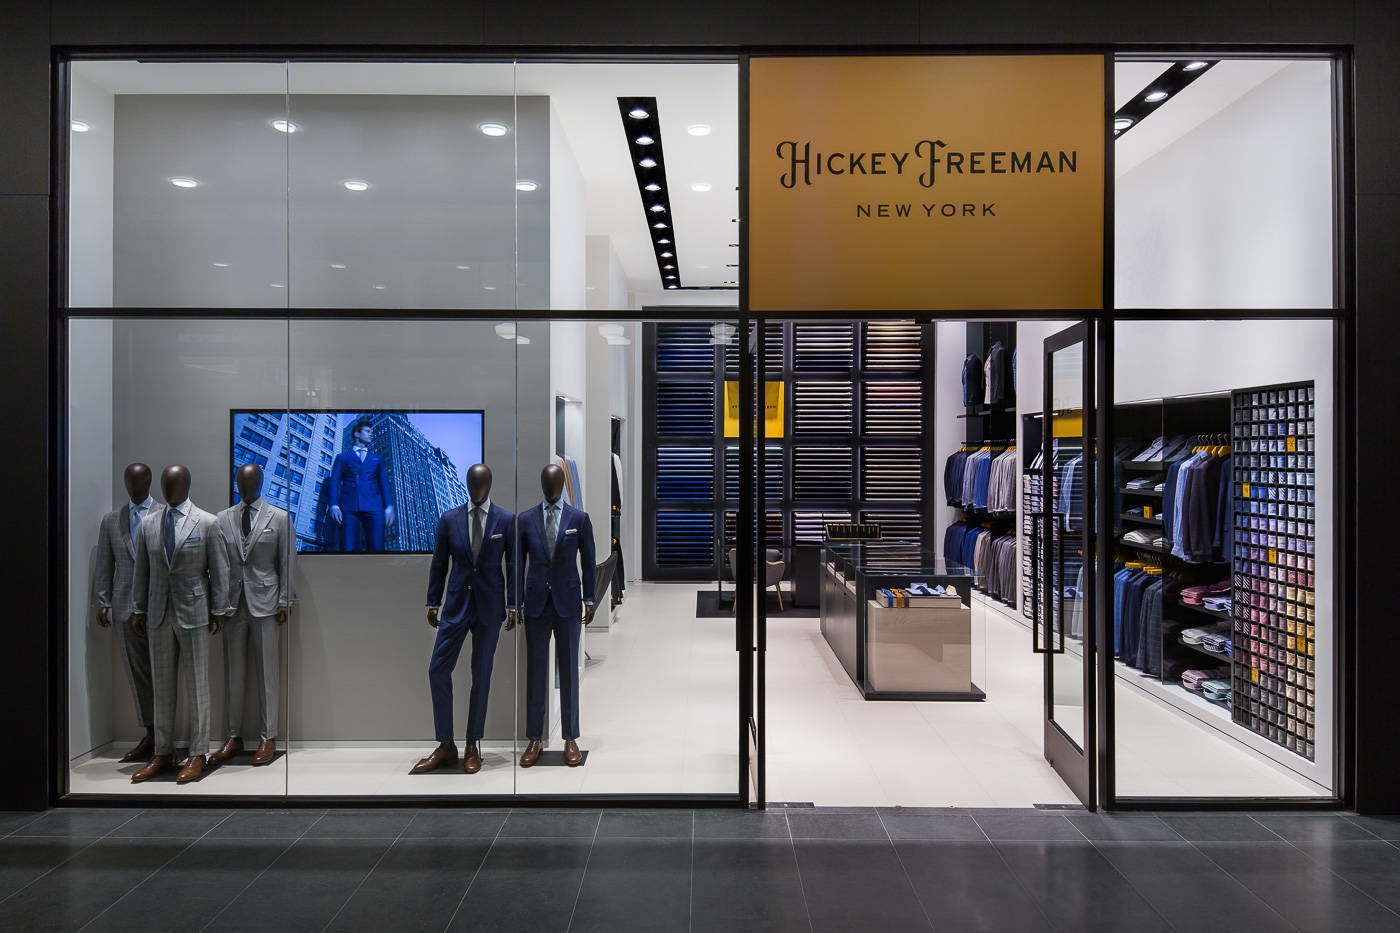 The front of the Madison Avenue Hickey Freeman Store